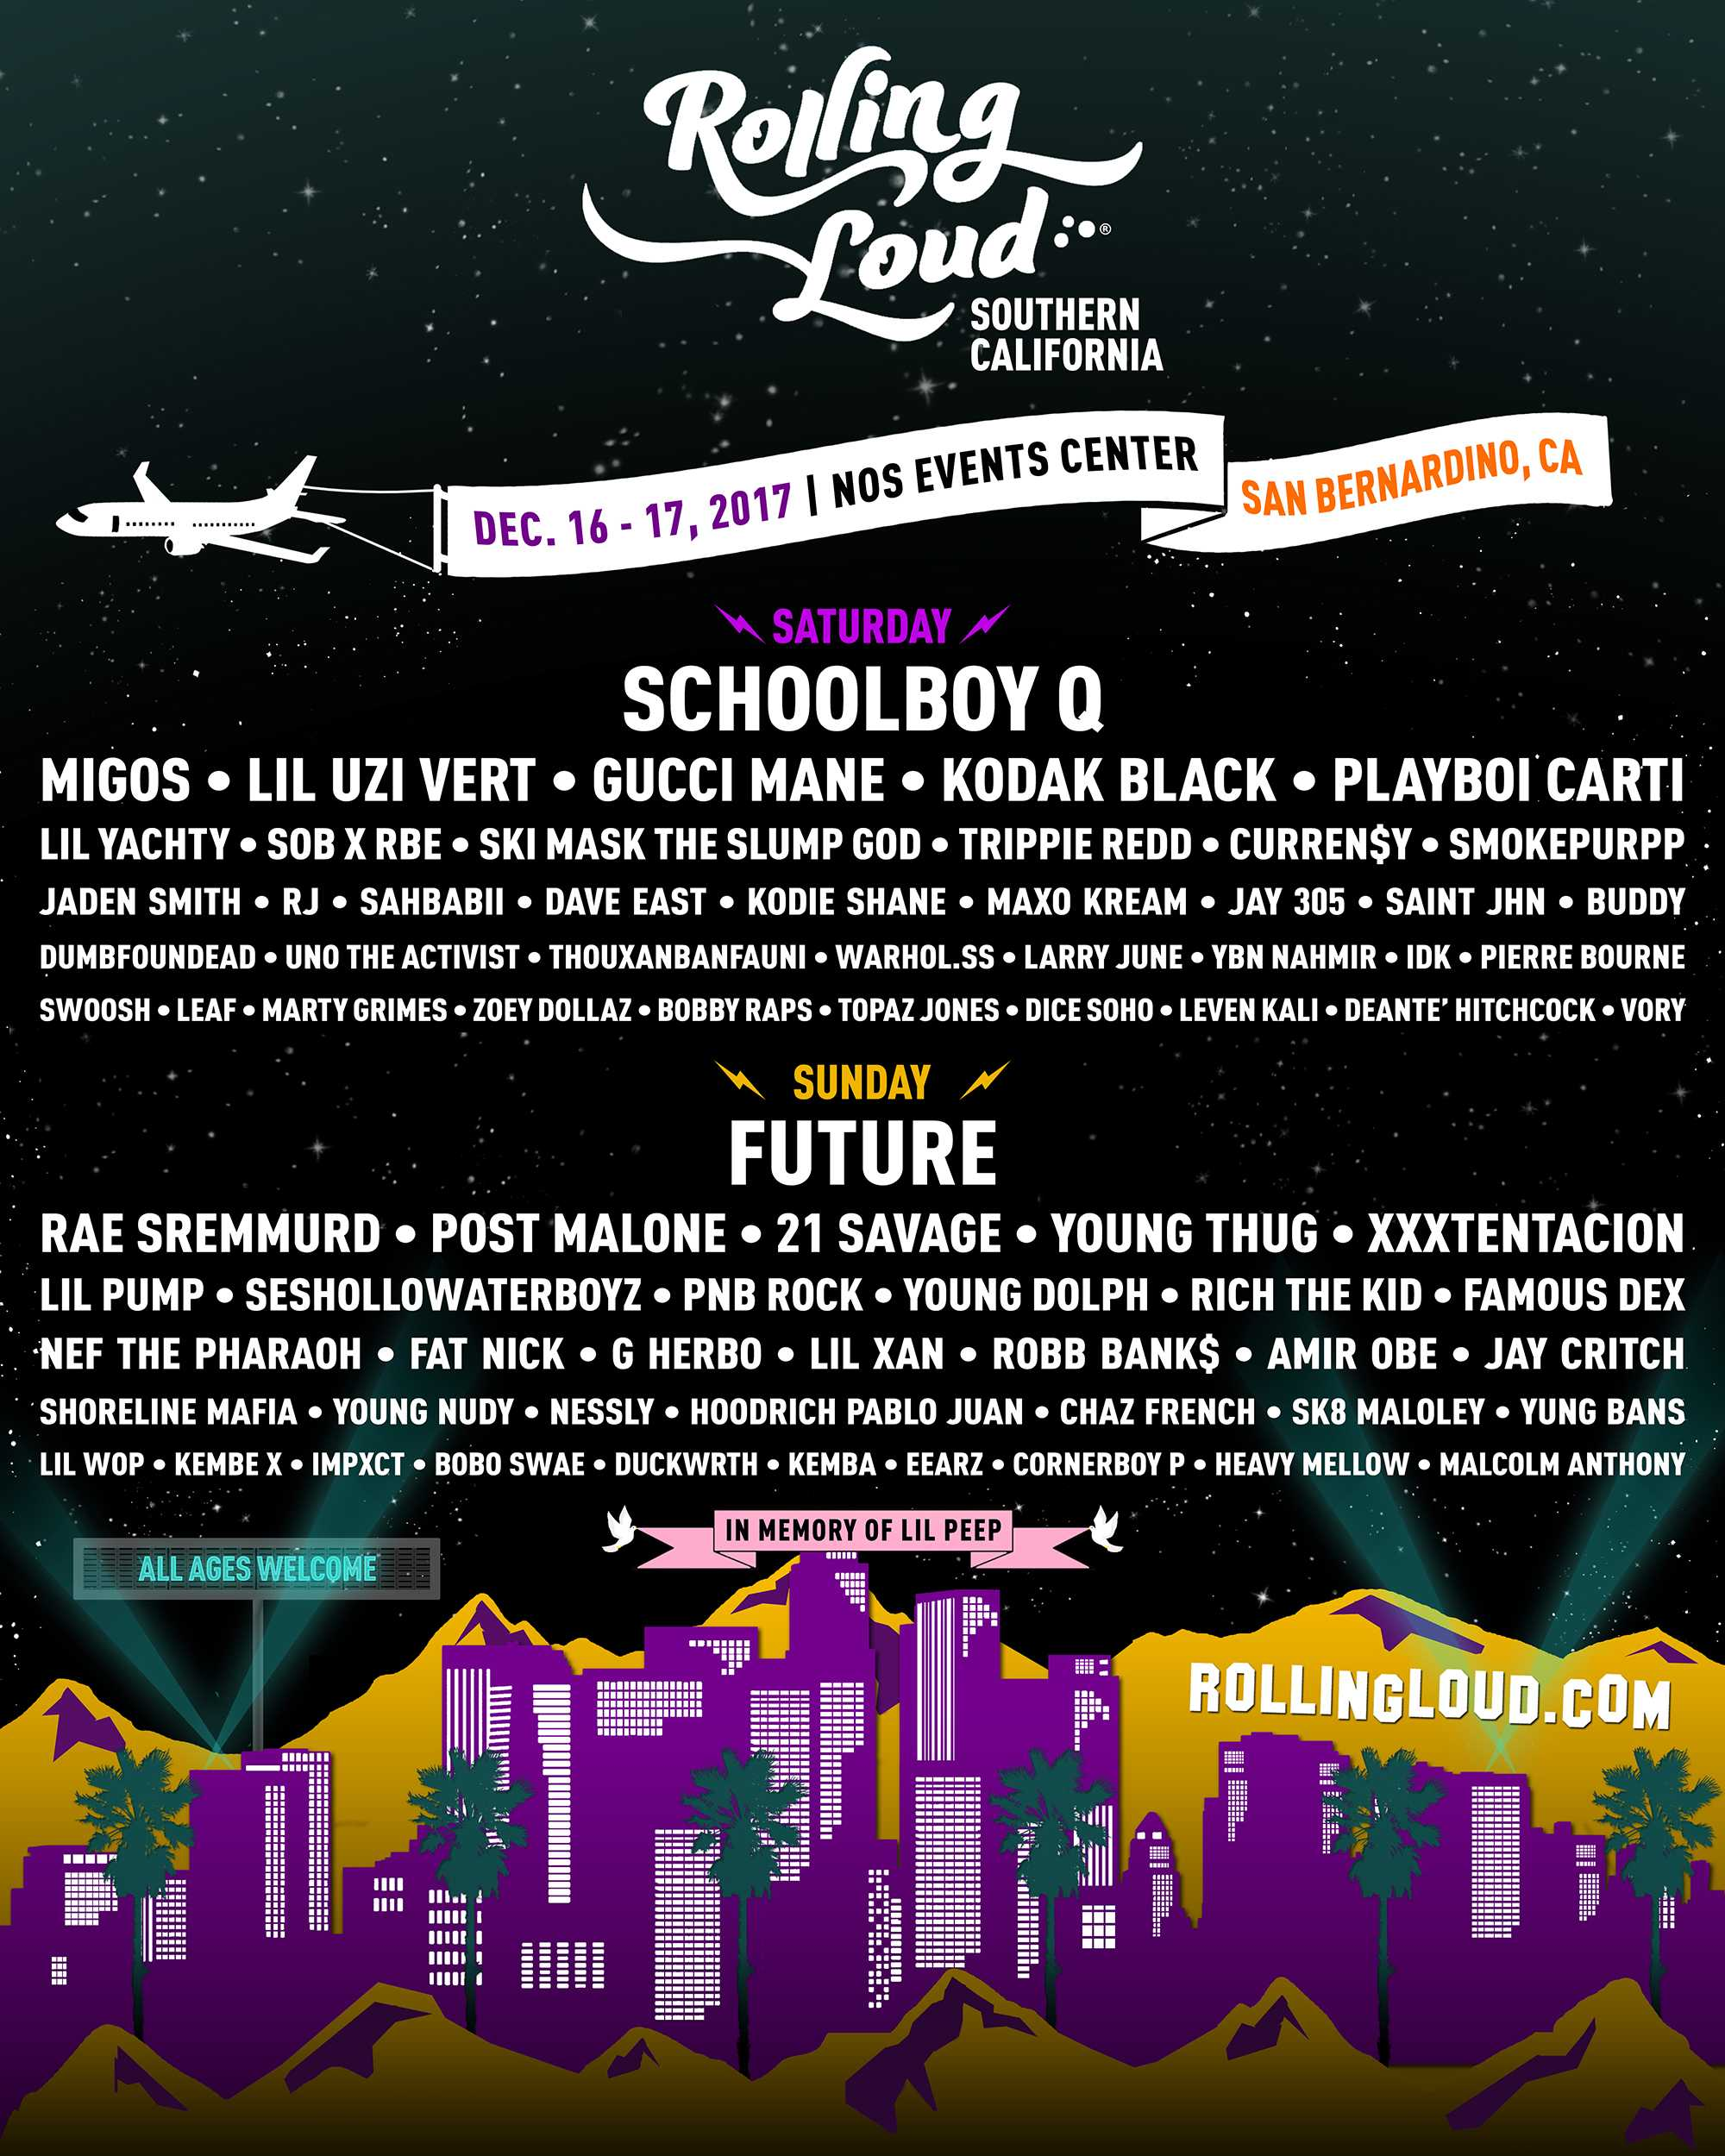 The independent festival will feature both big and underground Hip-Hop artists in their first SoCal edition of the festival. Photo Credit: Courtesy of Rolling Loud.